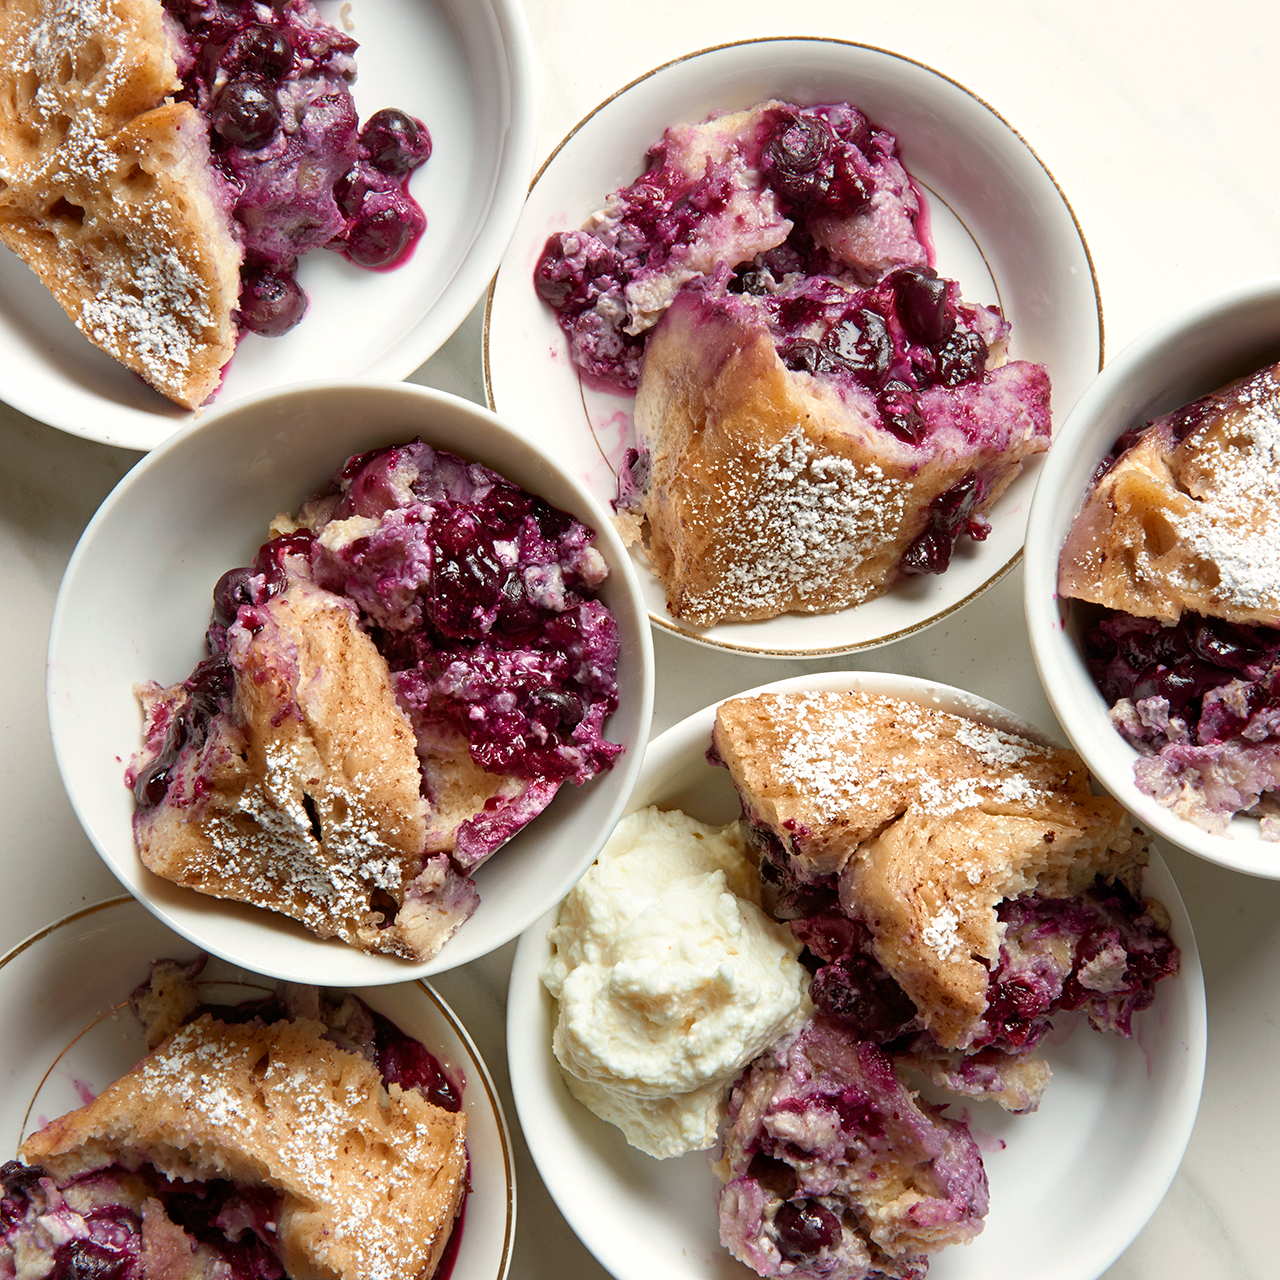 portioned blueberry-french toast casserole in dishes